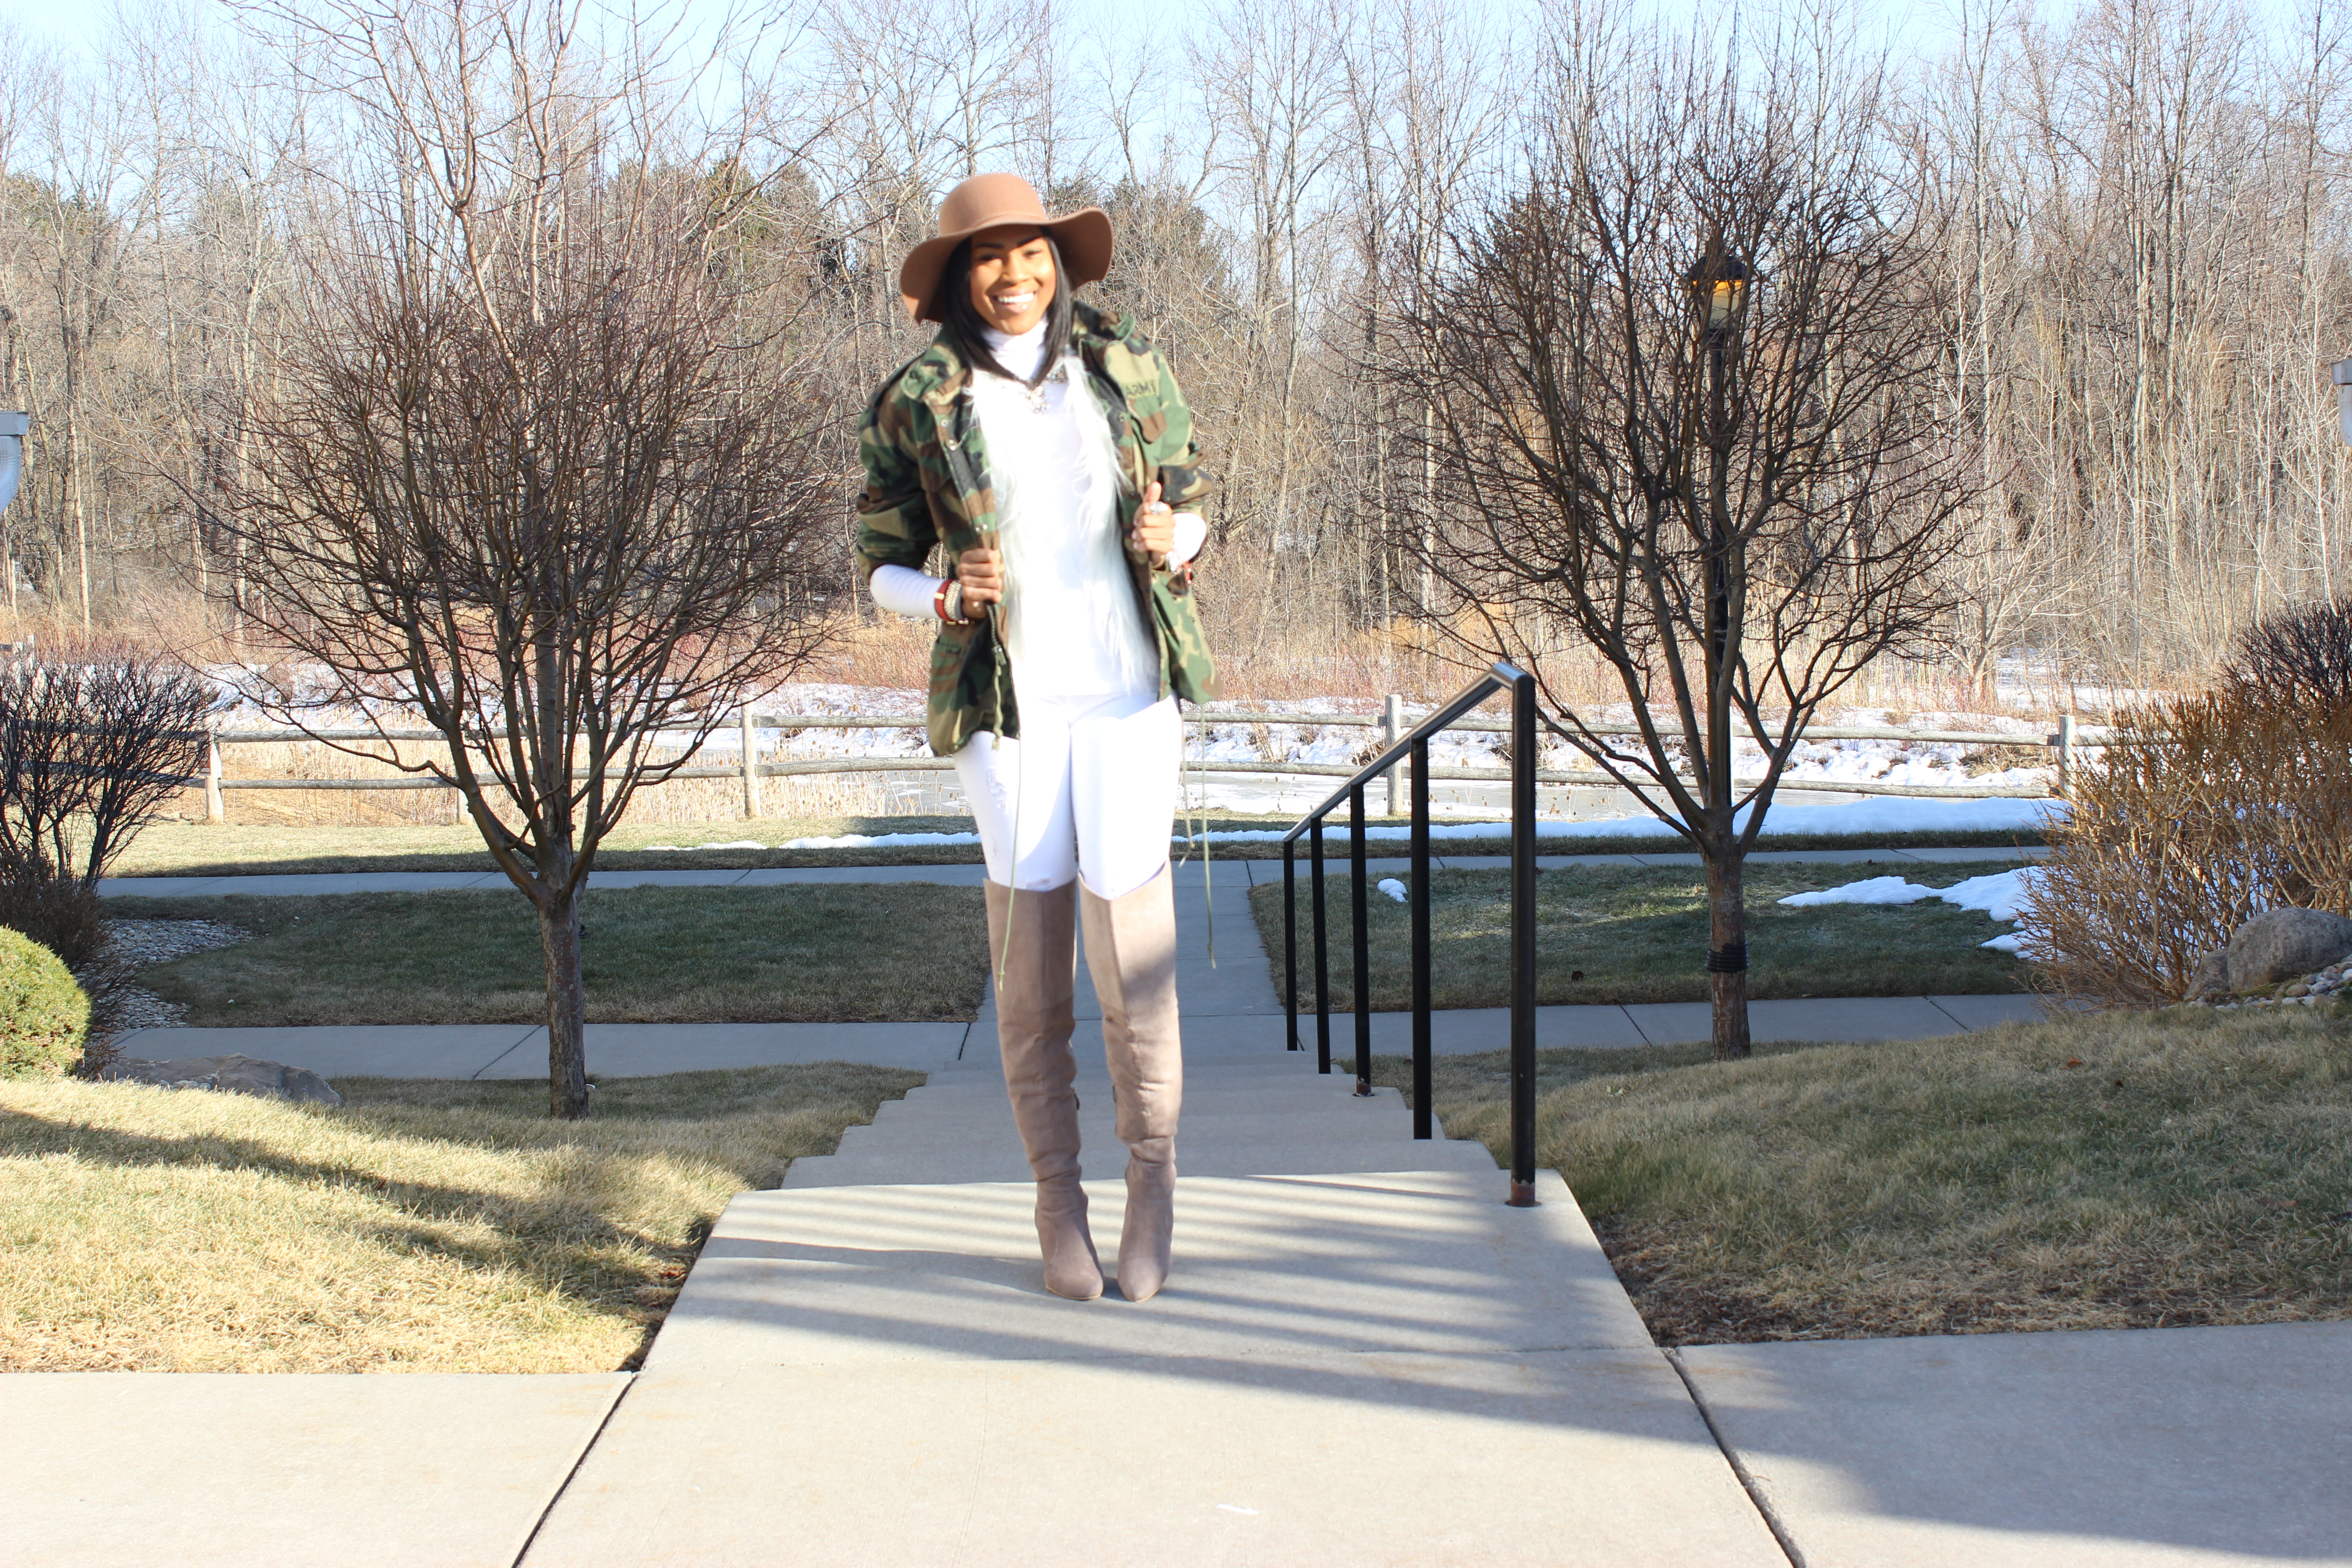 style-files-how-to-wear-camouflage-all-white-look-how-towear-all-white-oohlalablog-6